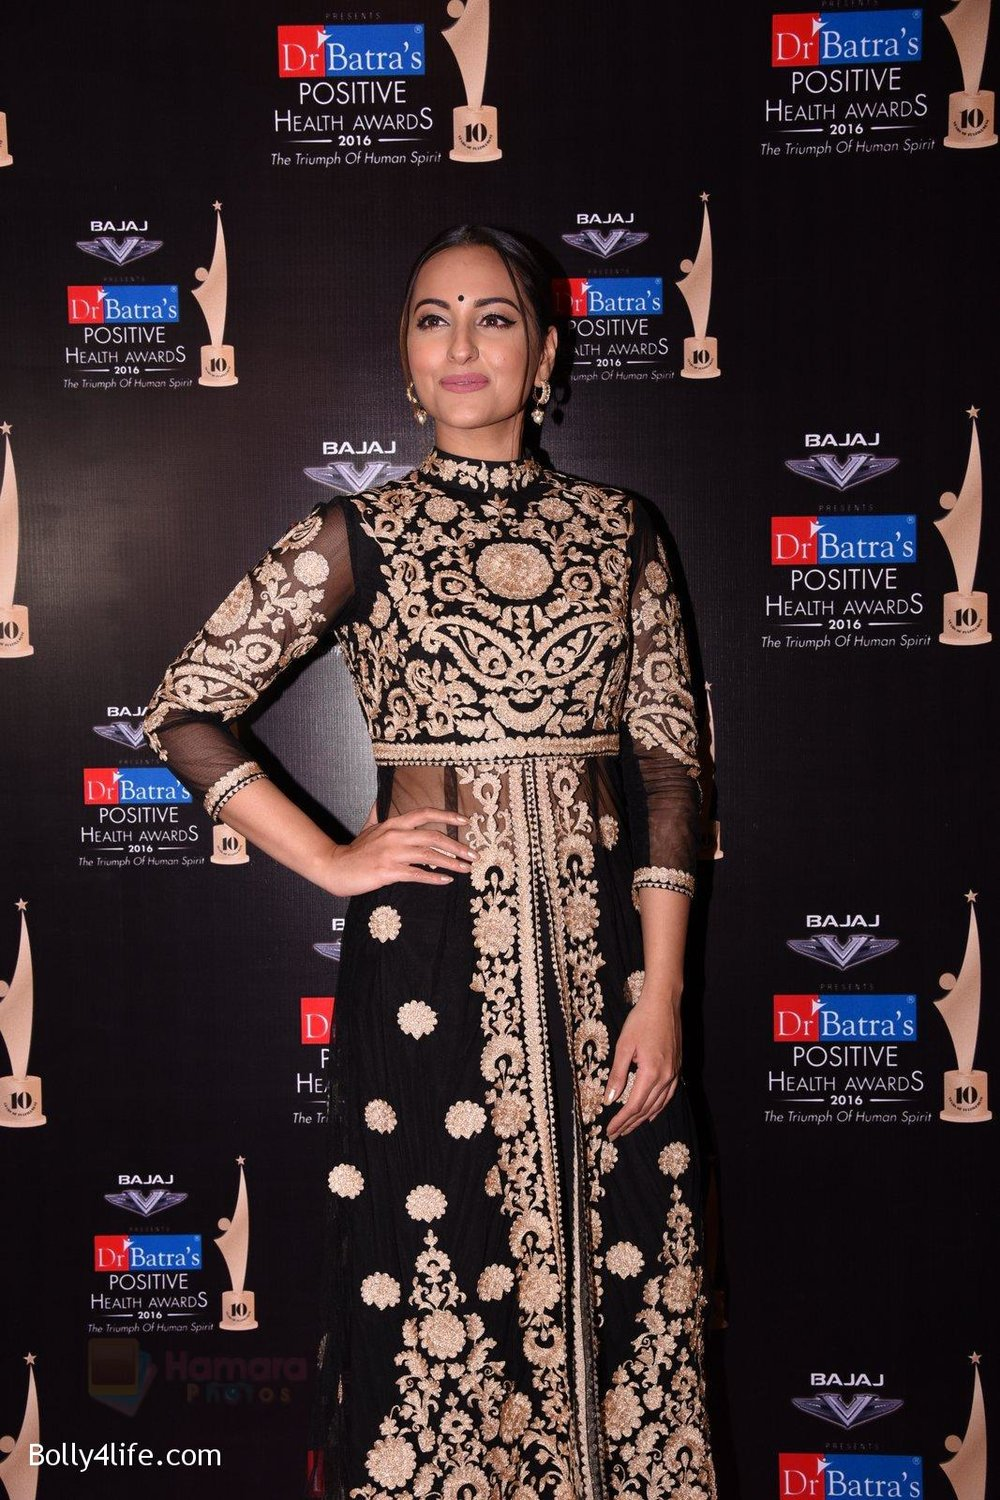 Sonakshi-Sinha-during-Dr-Batras-Positive-Health-Awards-2016-4.jpg